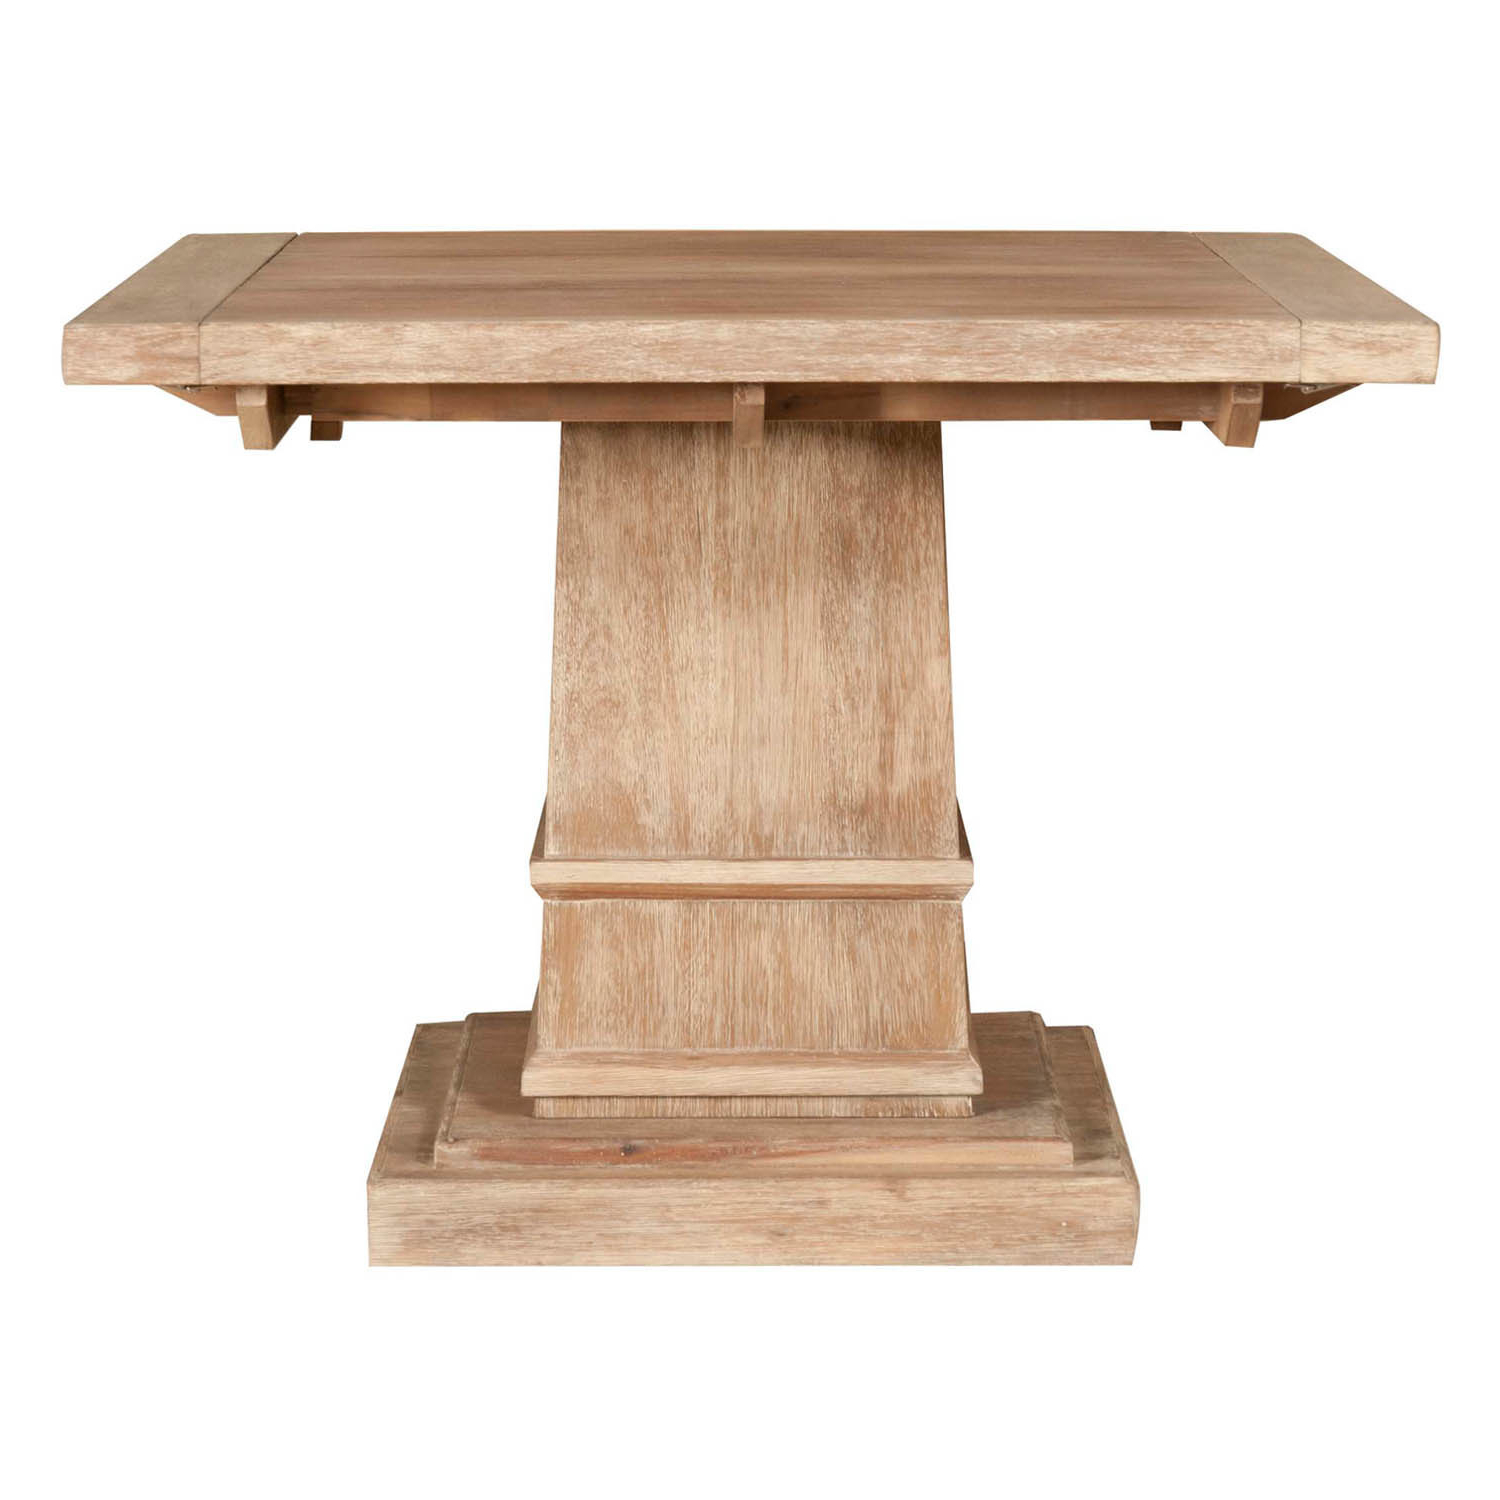 2020 Gray Wash Benchwright Pedestal Extending Dining Tables regarding Harlan Square Extension Dining Table, Stone Wash